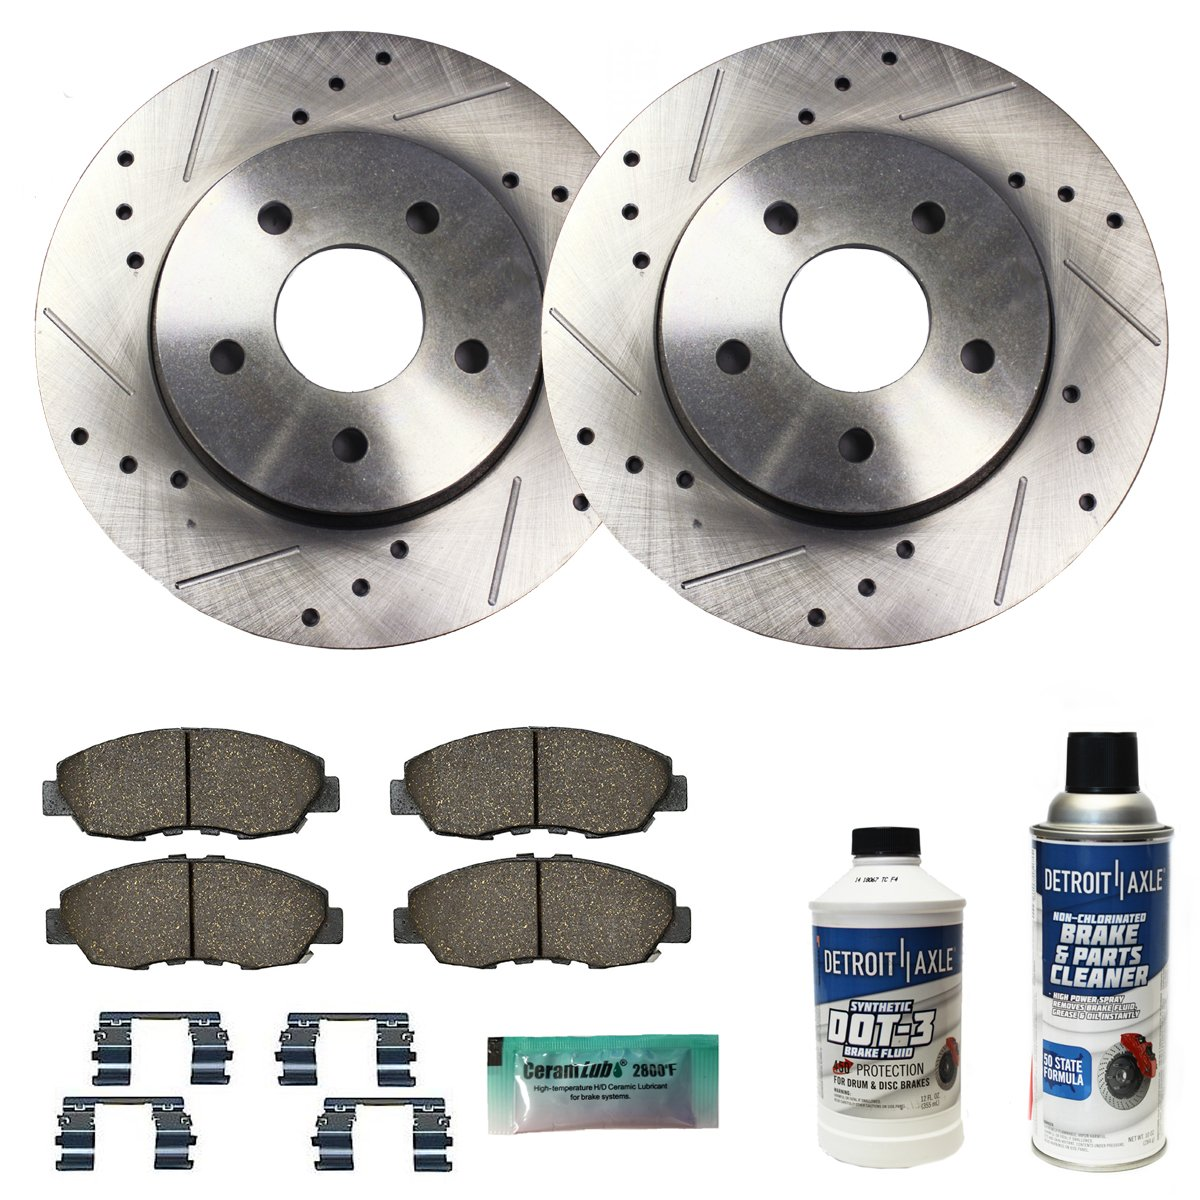 Detroit Axle - Drilled & Slotted Front Brake Rotors Performance GRADE Set &  Brake Pads w/Clips Hardware & BRAKE CLEANER & FLUID INCLUDED for 2011-2015